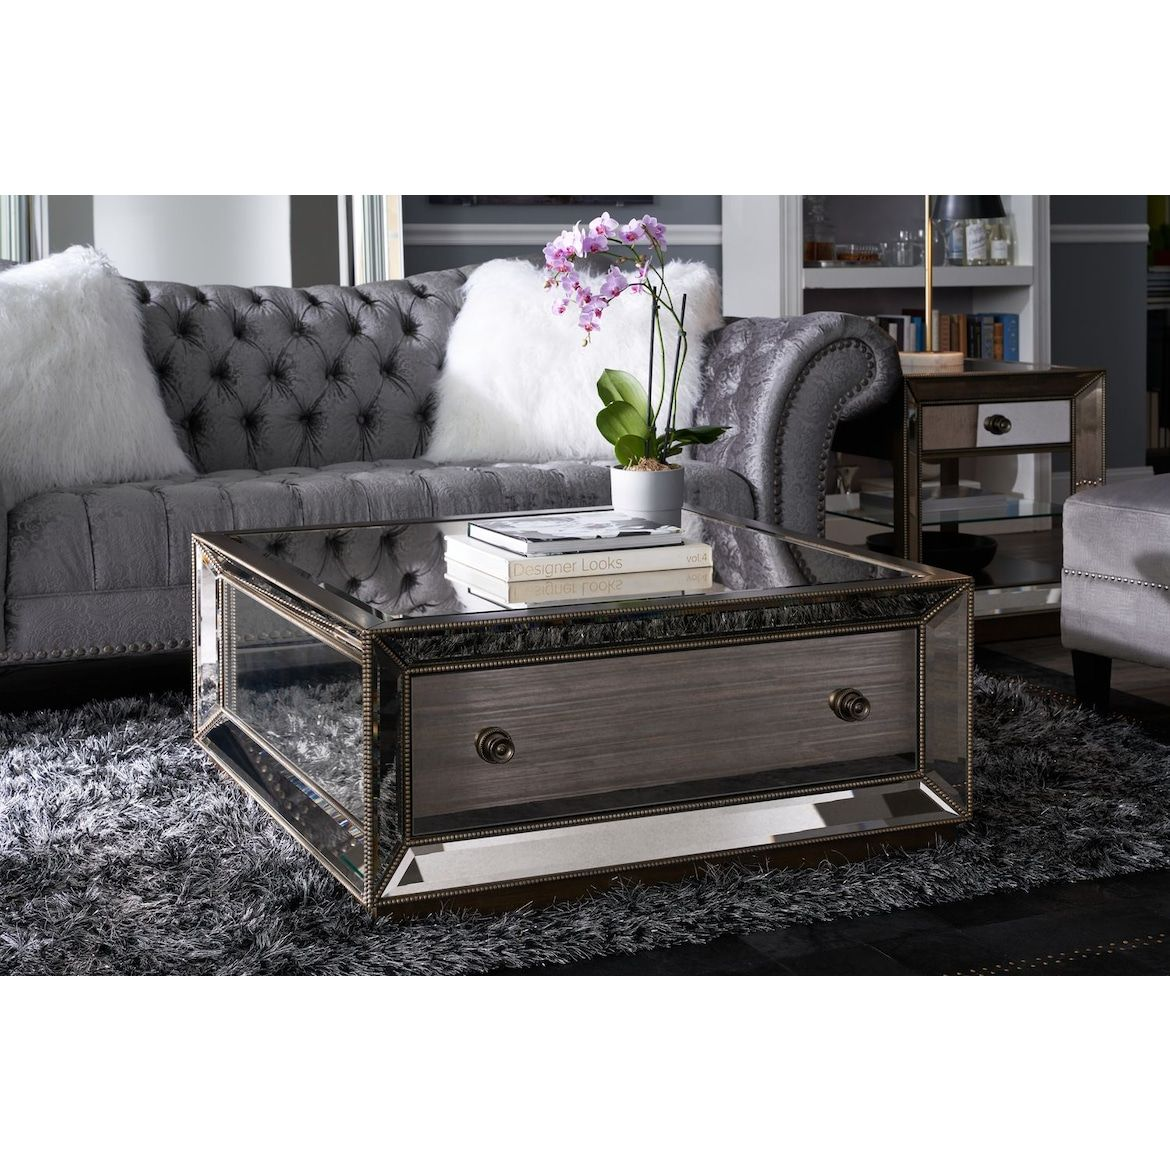 Reflection Coffee Table Value City Furniture And Mattresses Coffee Table Table Decor Living Room Value City Furniture [ 1170 x 1170 Pixel ]